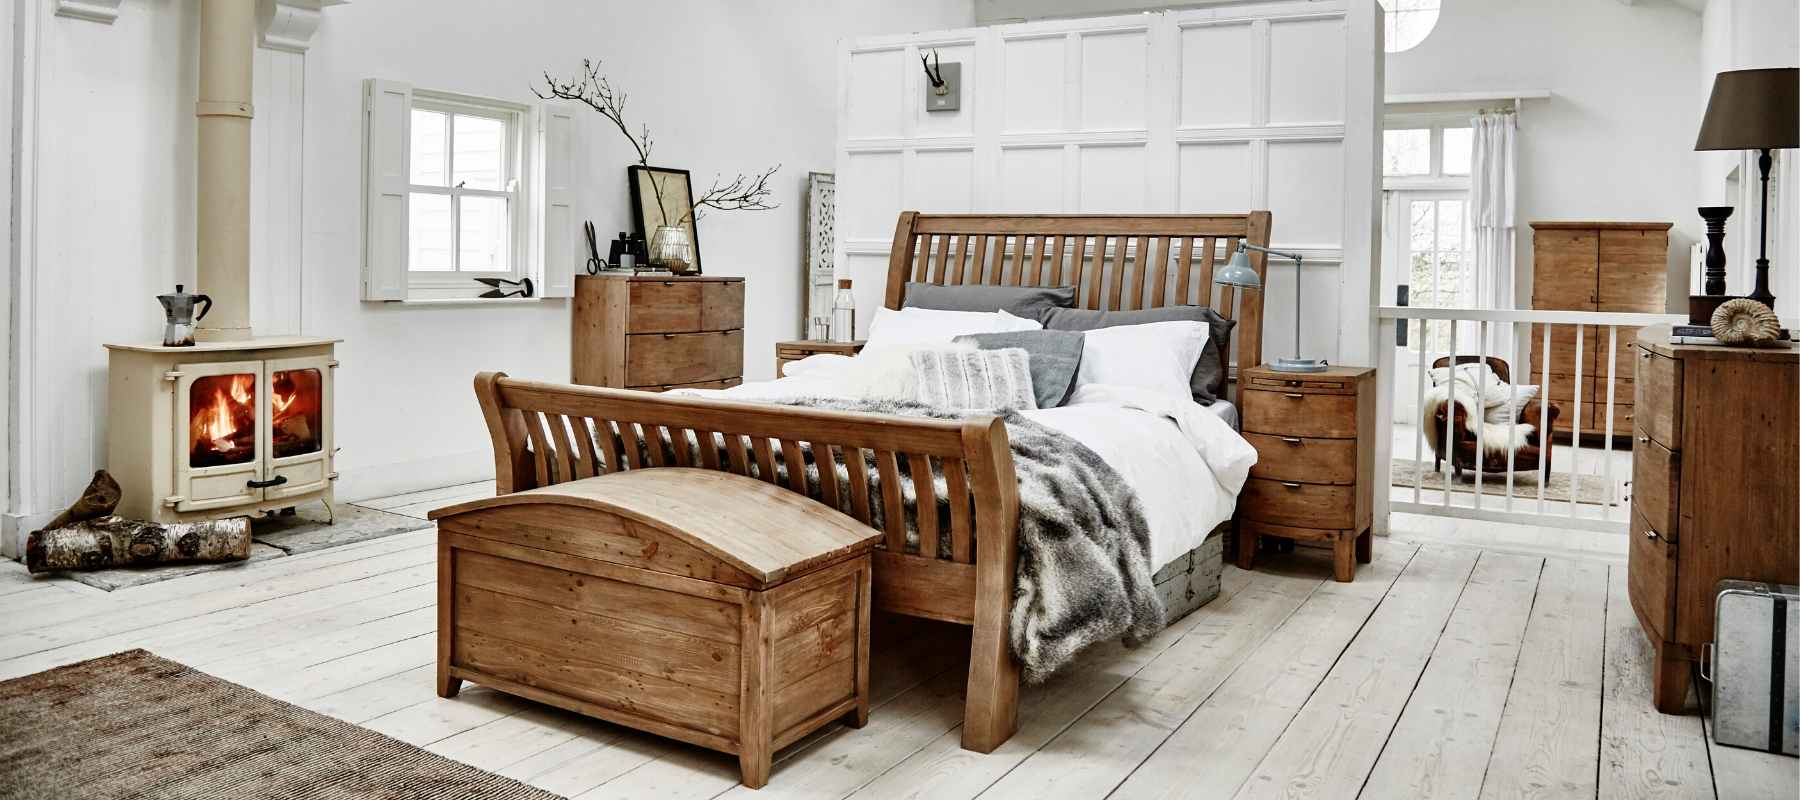 Rustic styled white bedroom including reclaimed wood bed, blanket box and chest of drawers